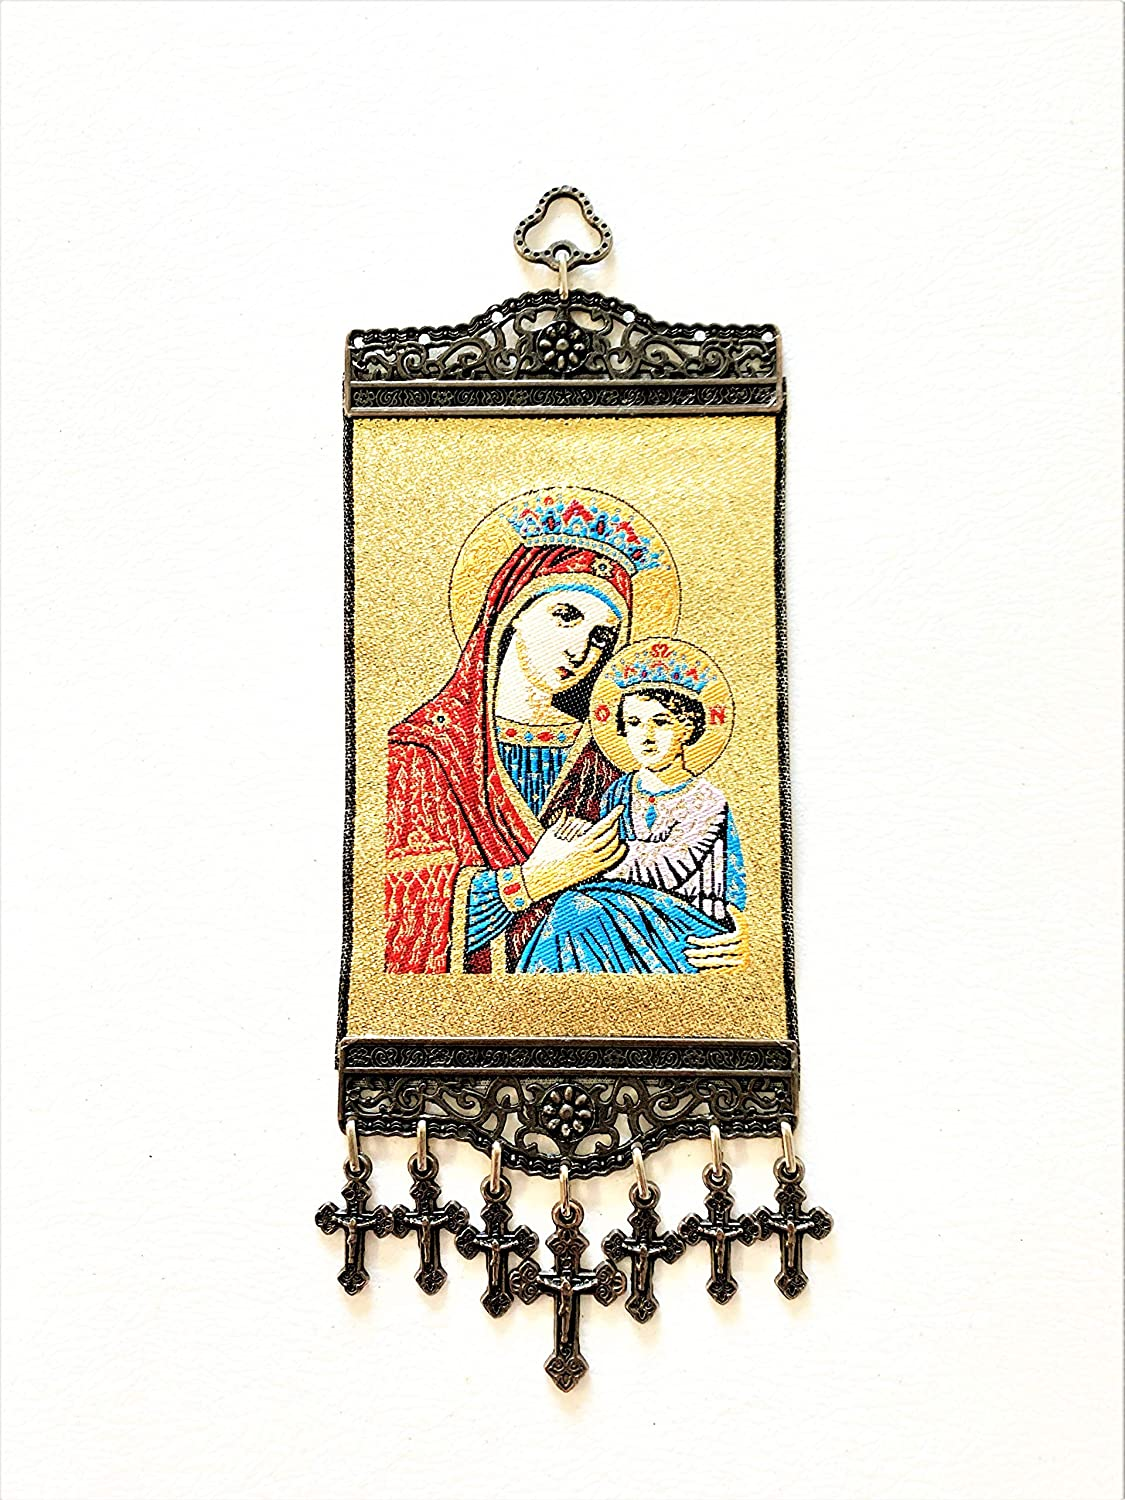 Religious Icon - Holy Saint Mary Blessed Virgin - Our Lady of Light - Wall Hanging Tapestry Banner Large Art Decor - Christian Orthodox Catholic - 11 x 4 inch - Christmas Easter Ideal